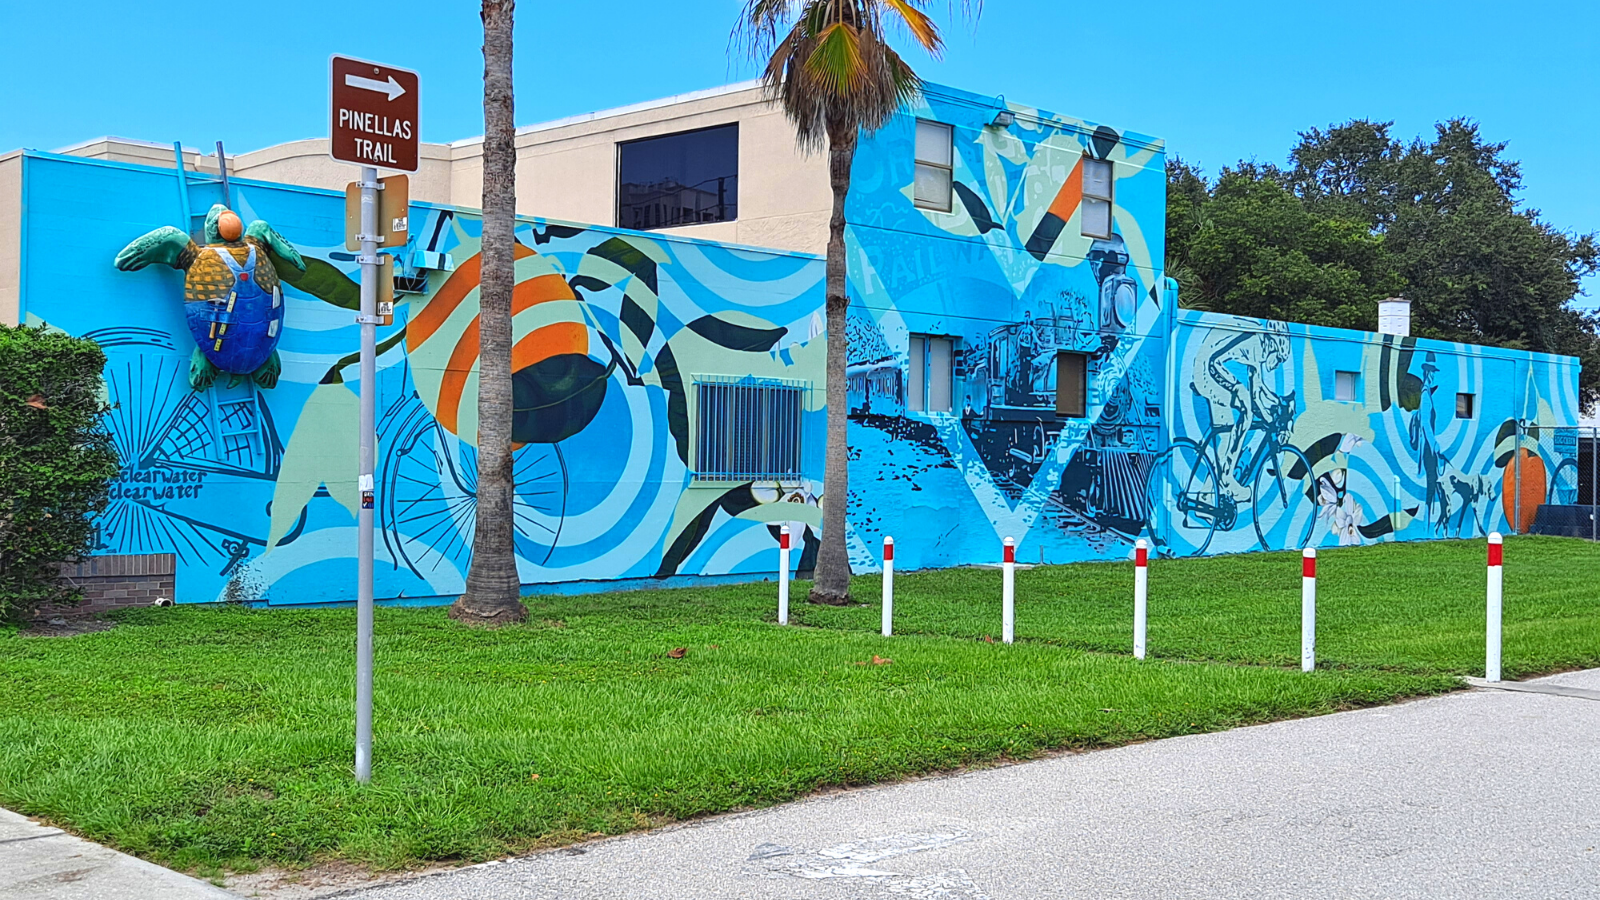 Pinellas Trail Mural and counters